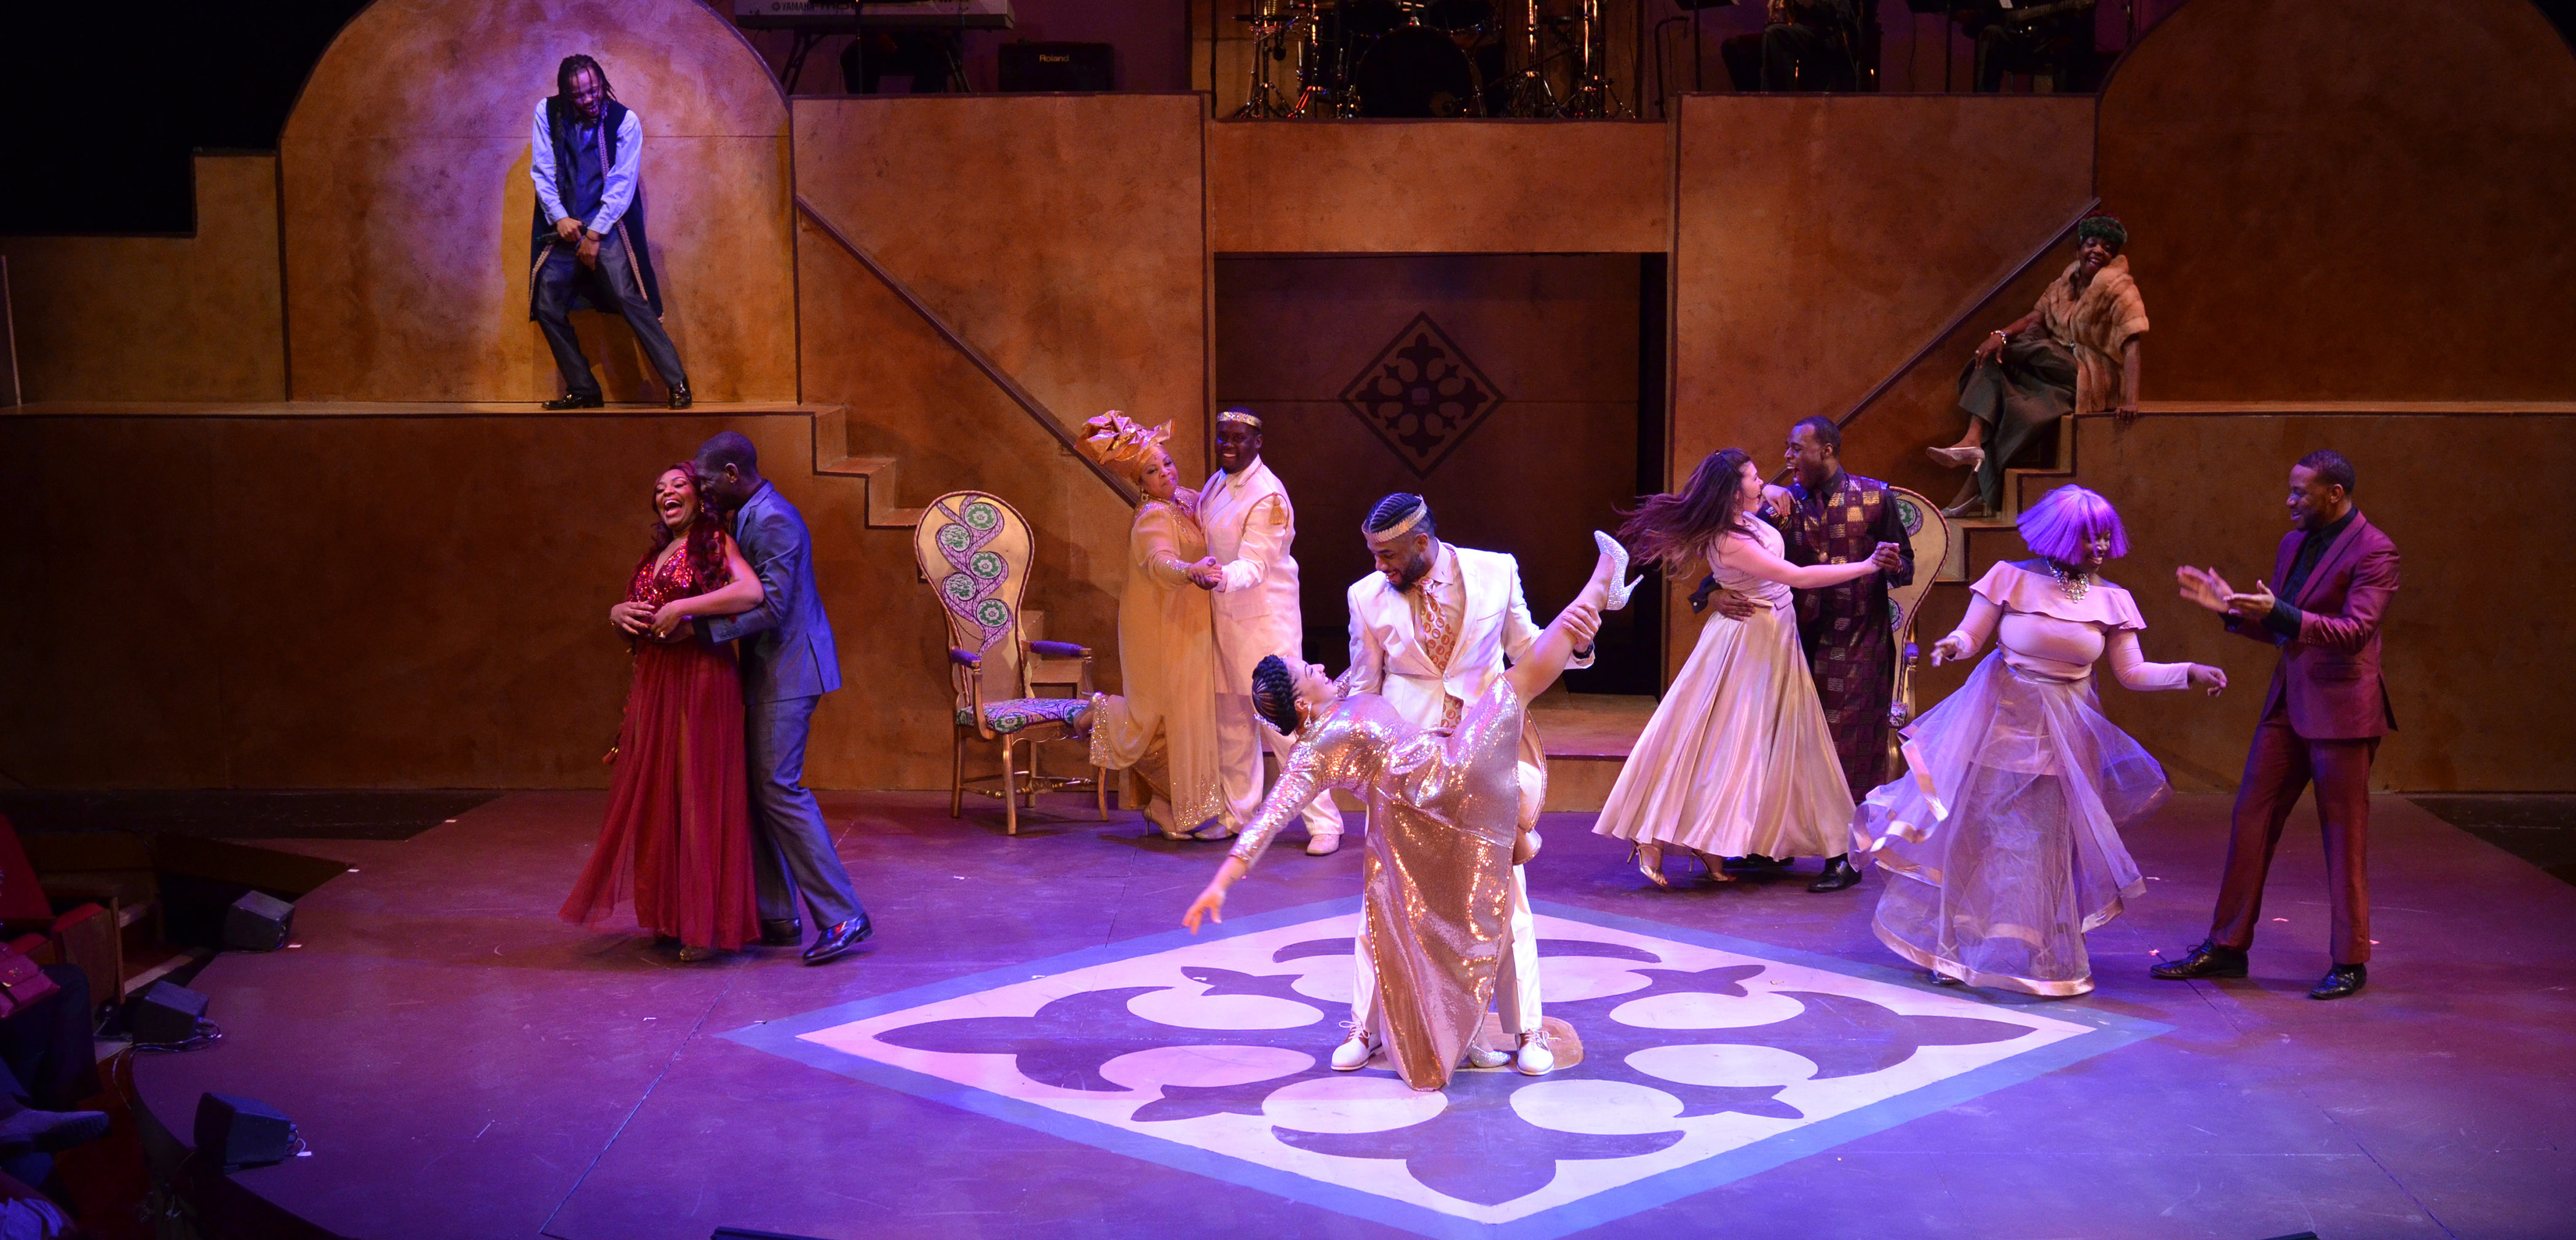 Full of Humor and Energy THE OTHER CINDERELLA Brings the House Down